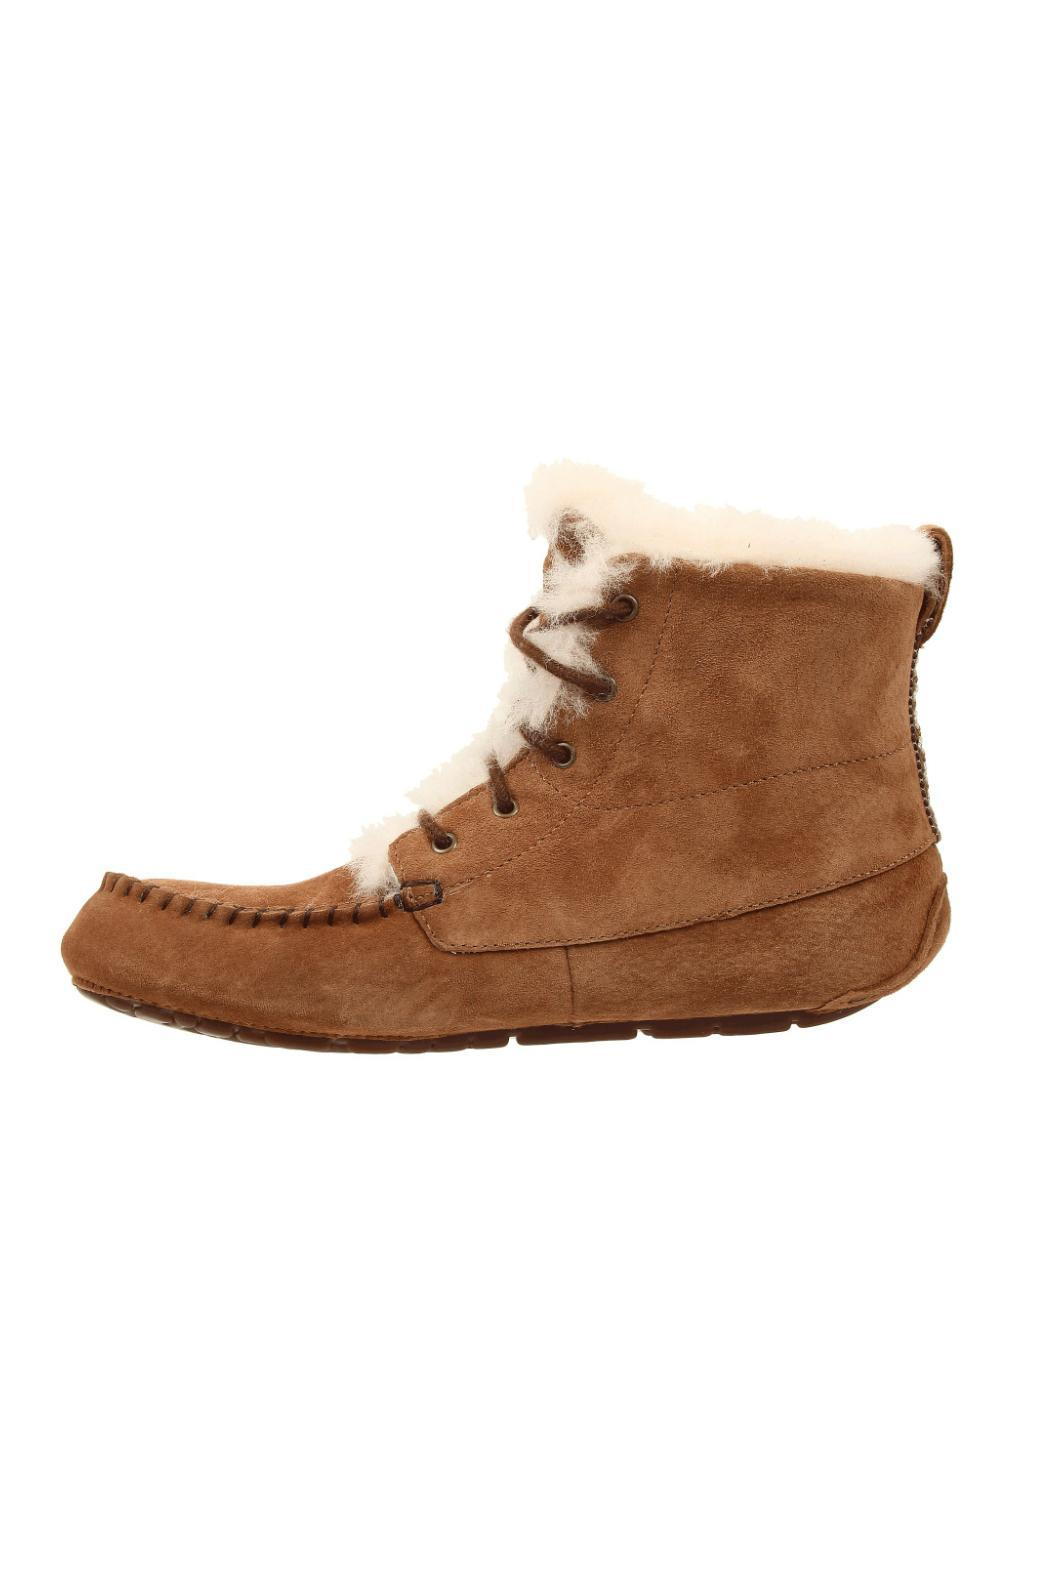 1b5c2d00821 UGG Australia Chickaree Moccasin Bootie from Branford by Shoetique ...